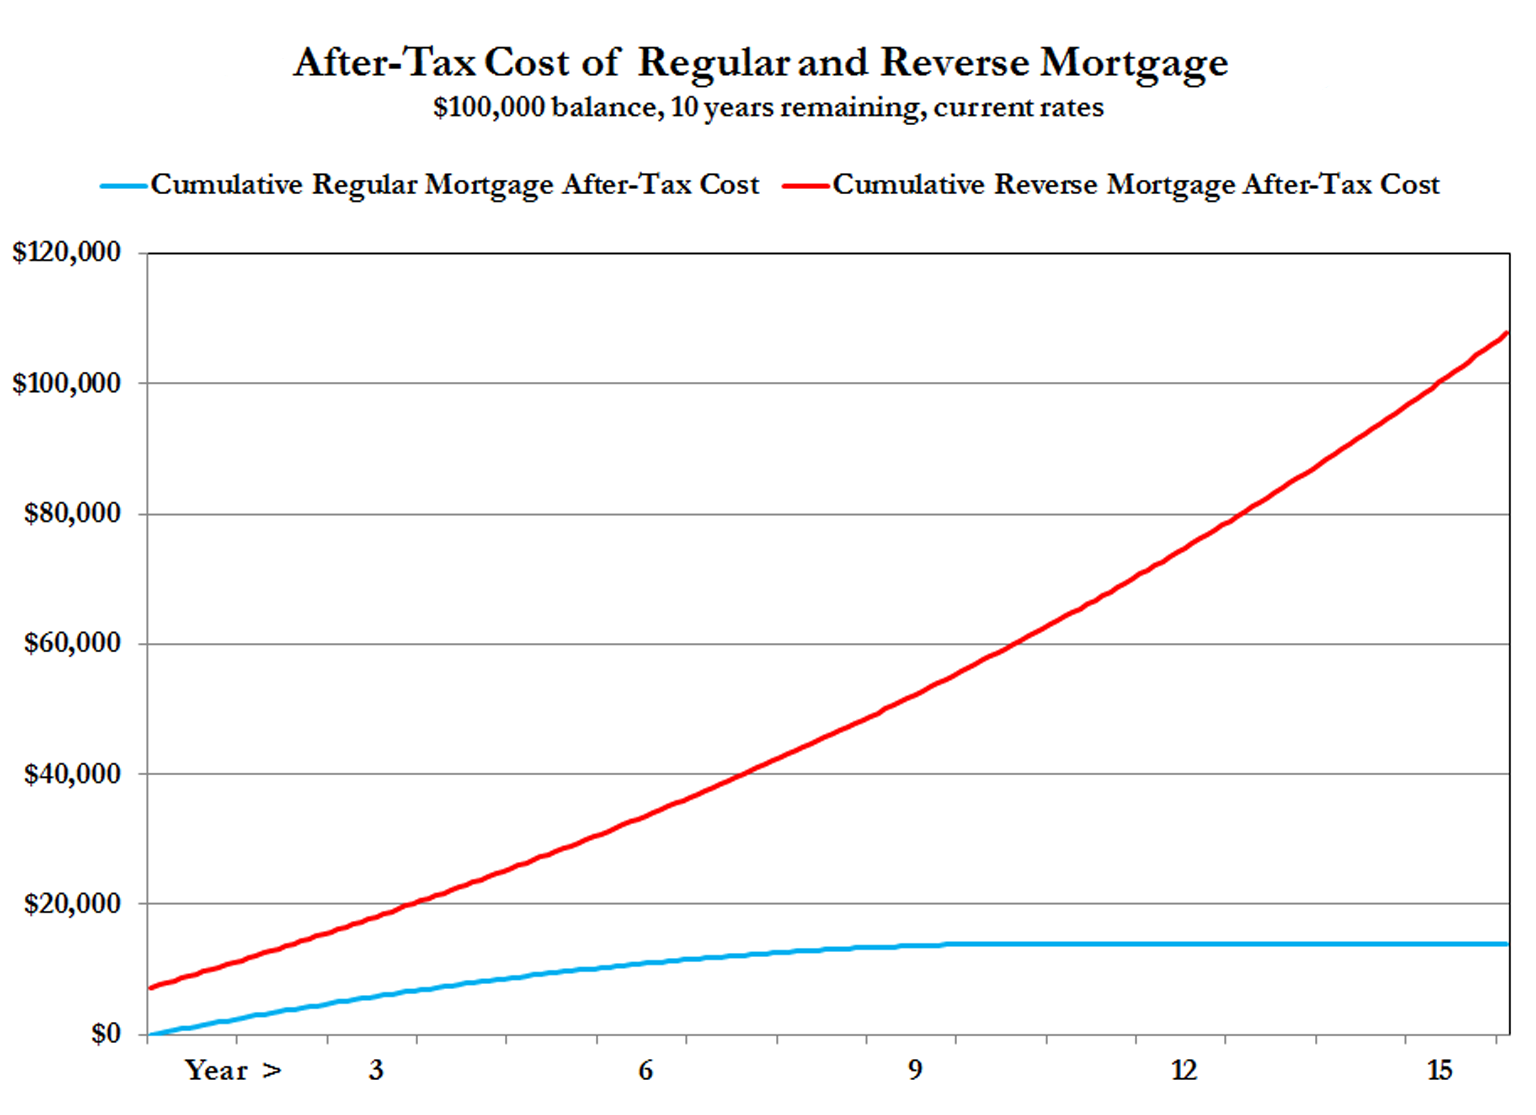 reverse mortgages cost vastly more than regular mortgages